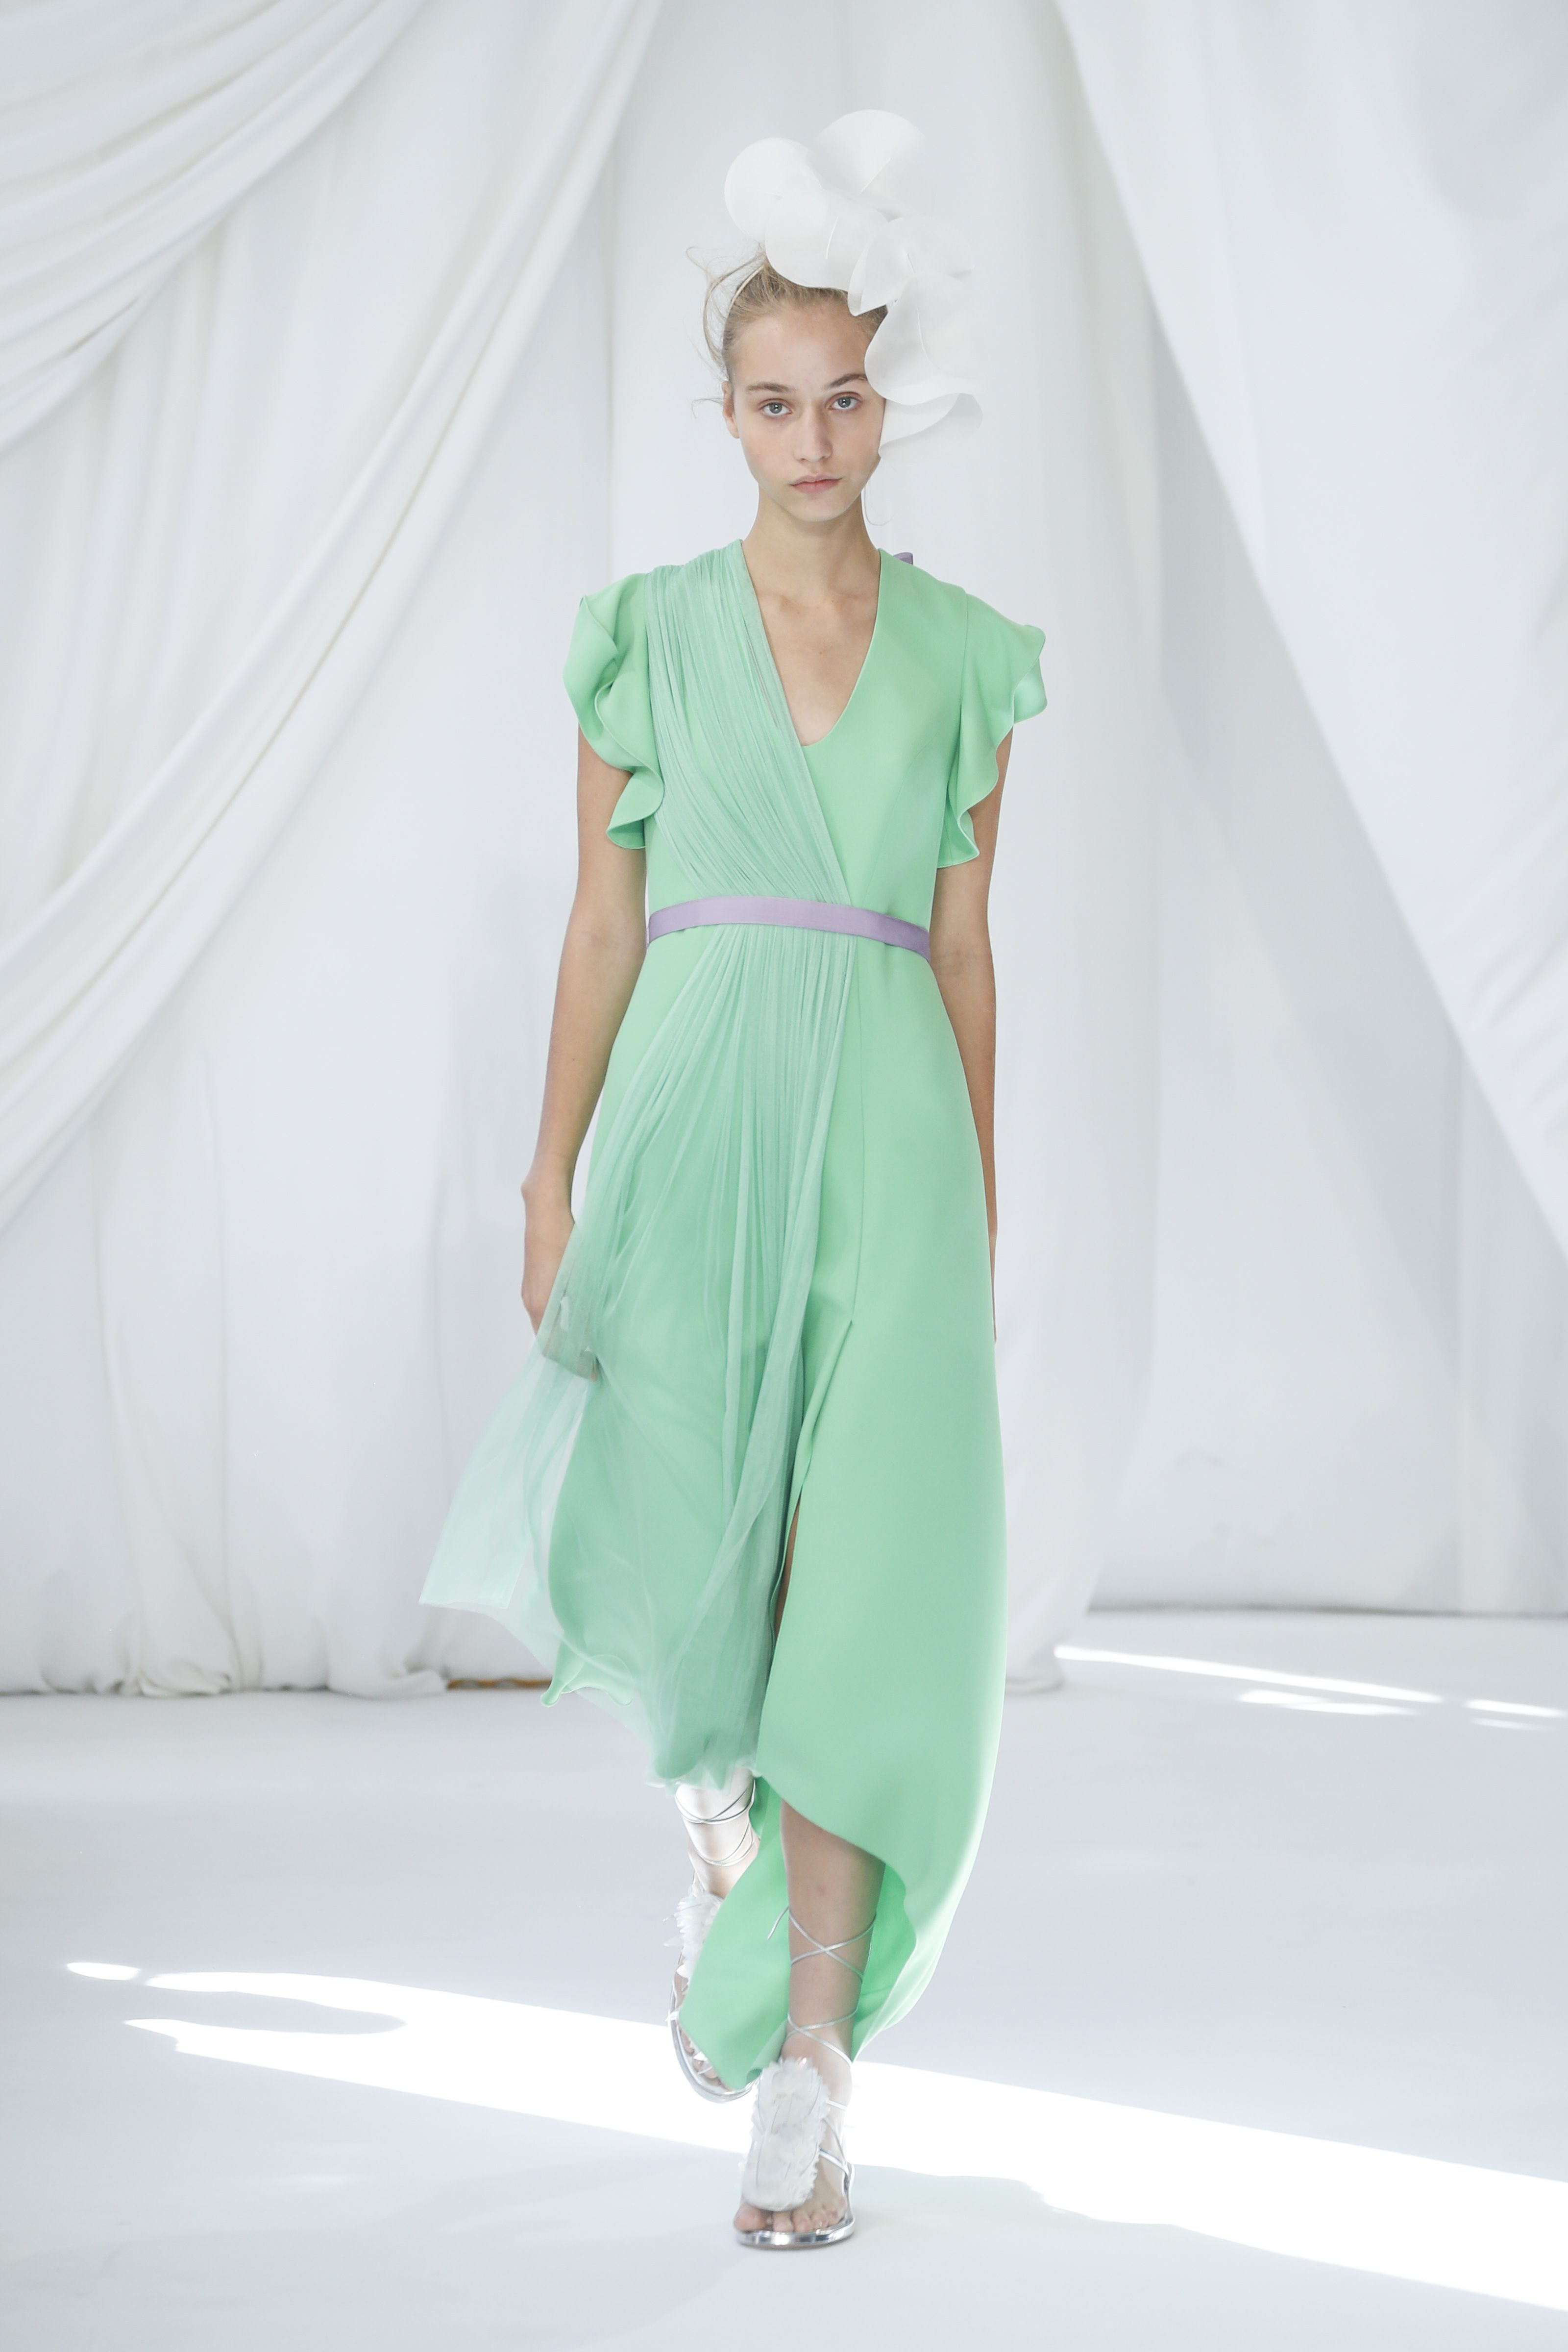 Delpozo SpringSummer 2019 Collection – New York Fashion Week recommend